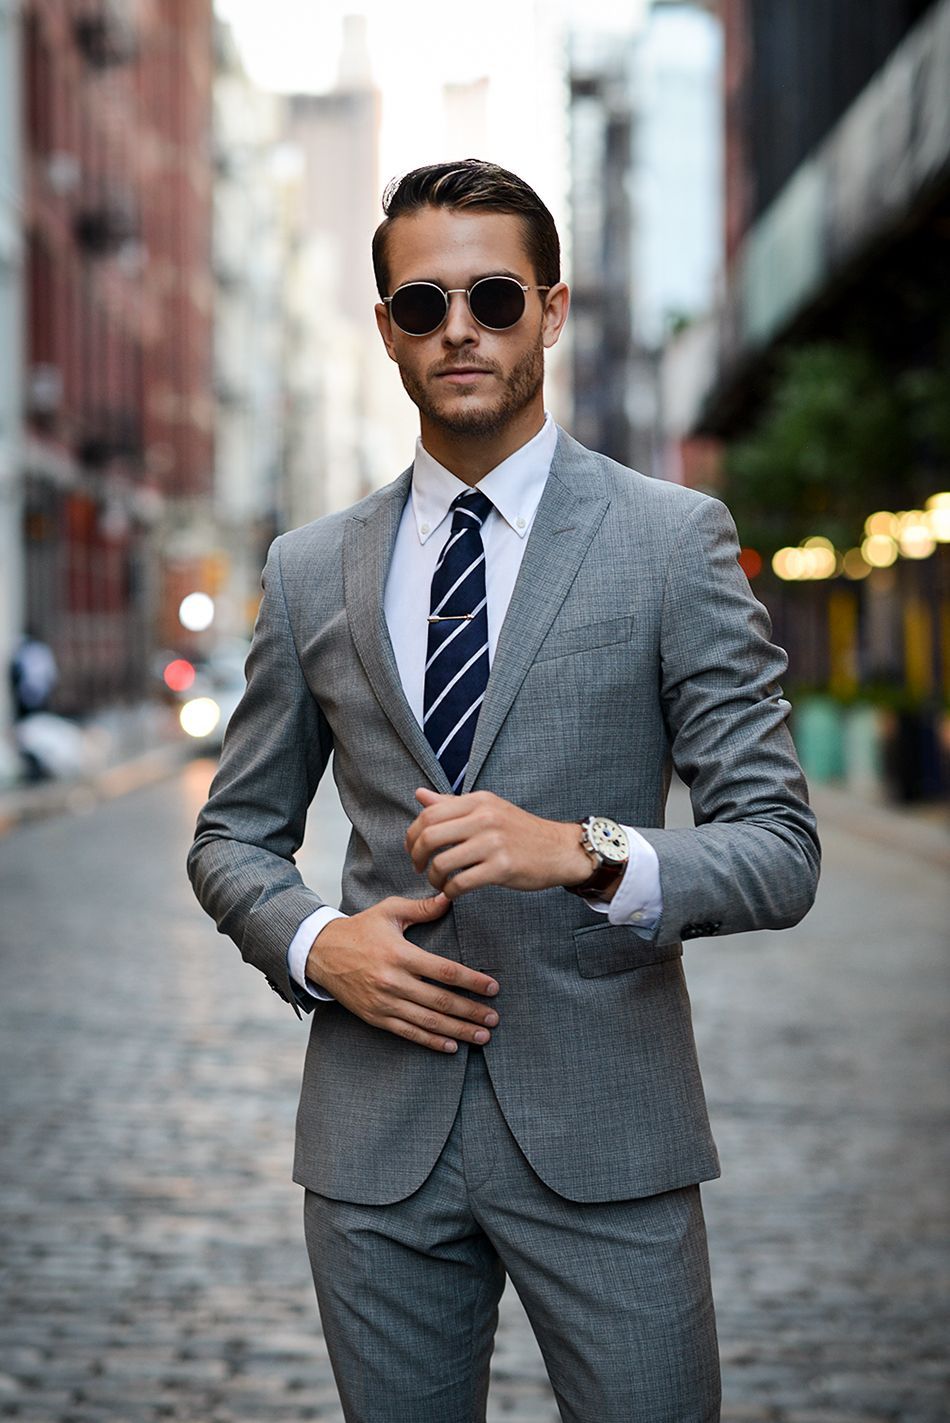 Agree, rather Mens style with pin striped suits